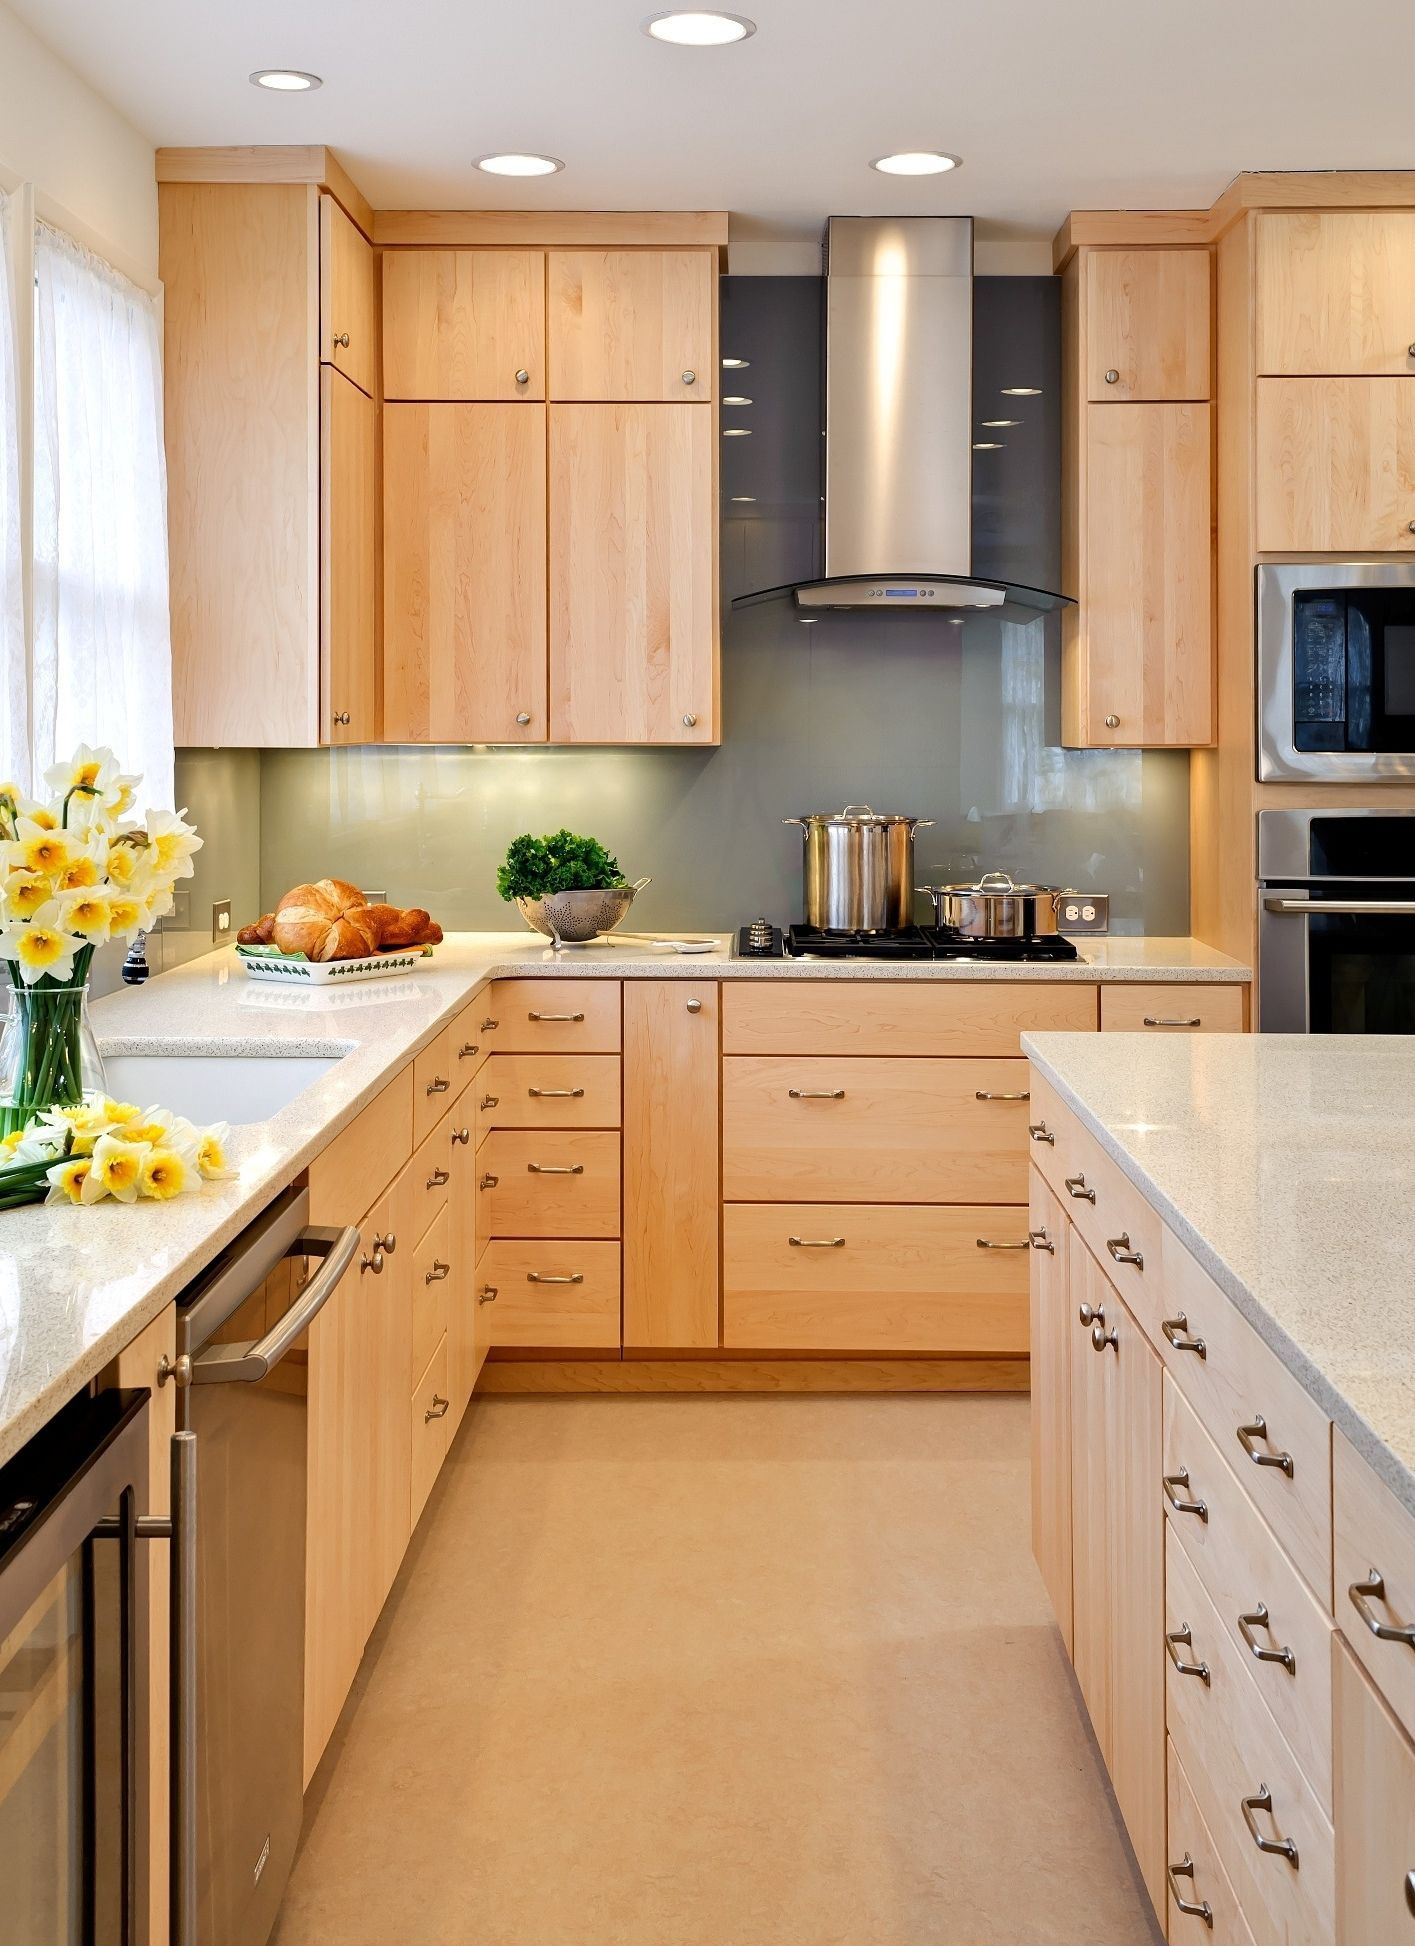 light birch kitchen cabinets 2021 in 2020 contemporary wooden kitchen maple kitchen cabinets on kitchen cabinets light wood id=75858